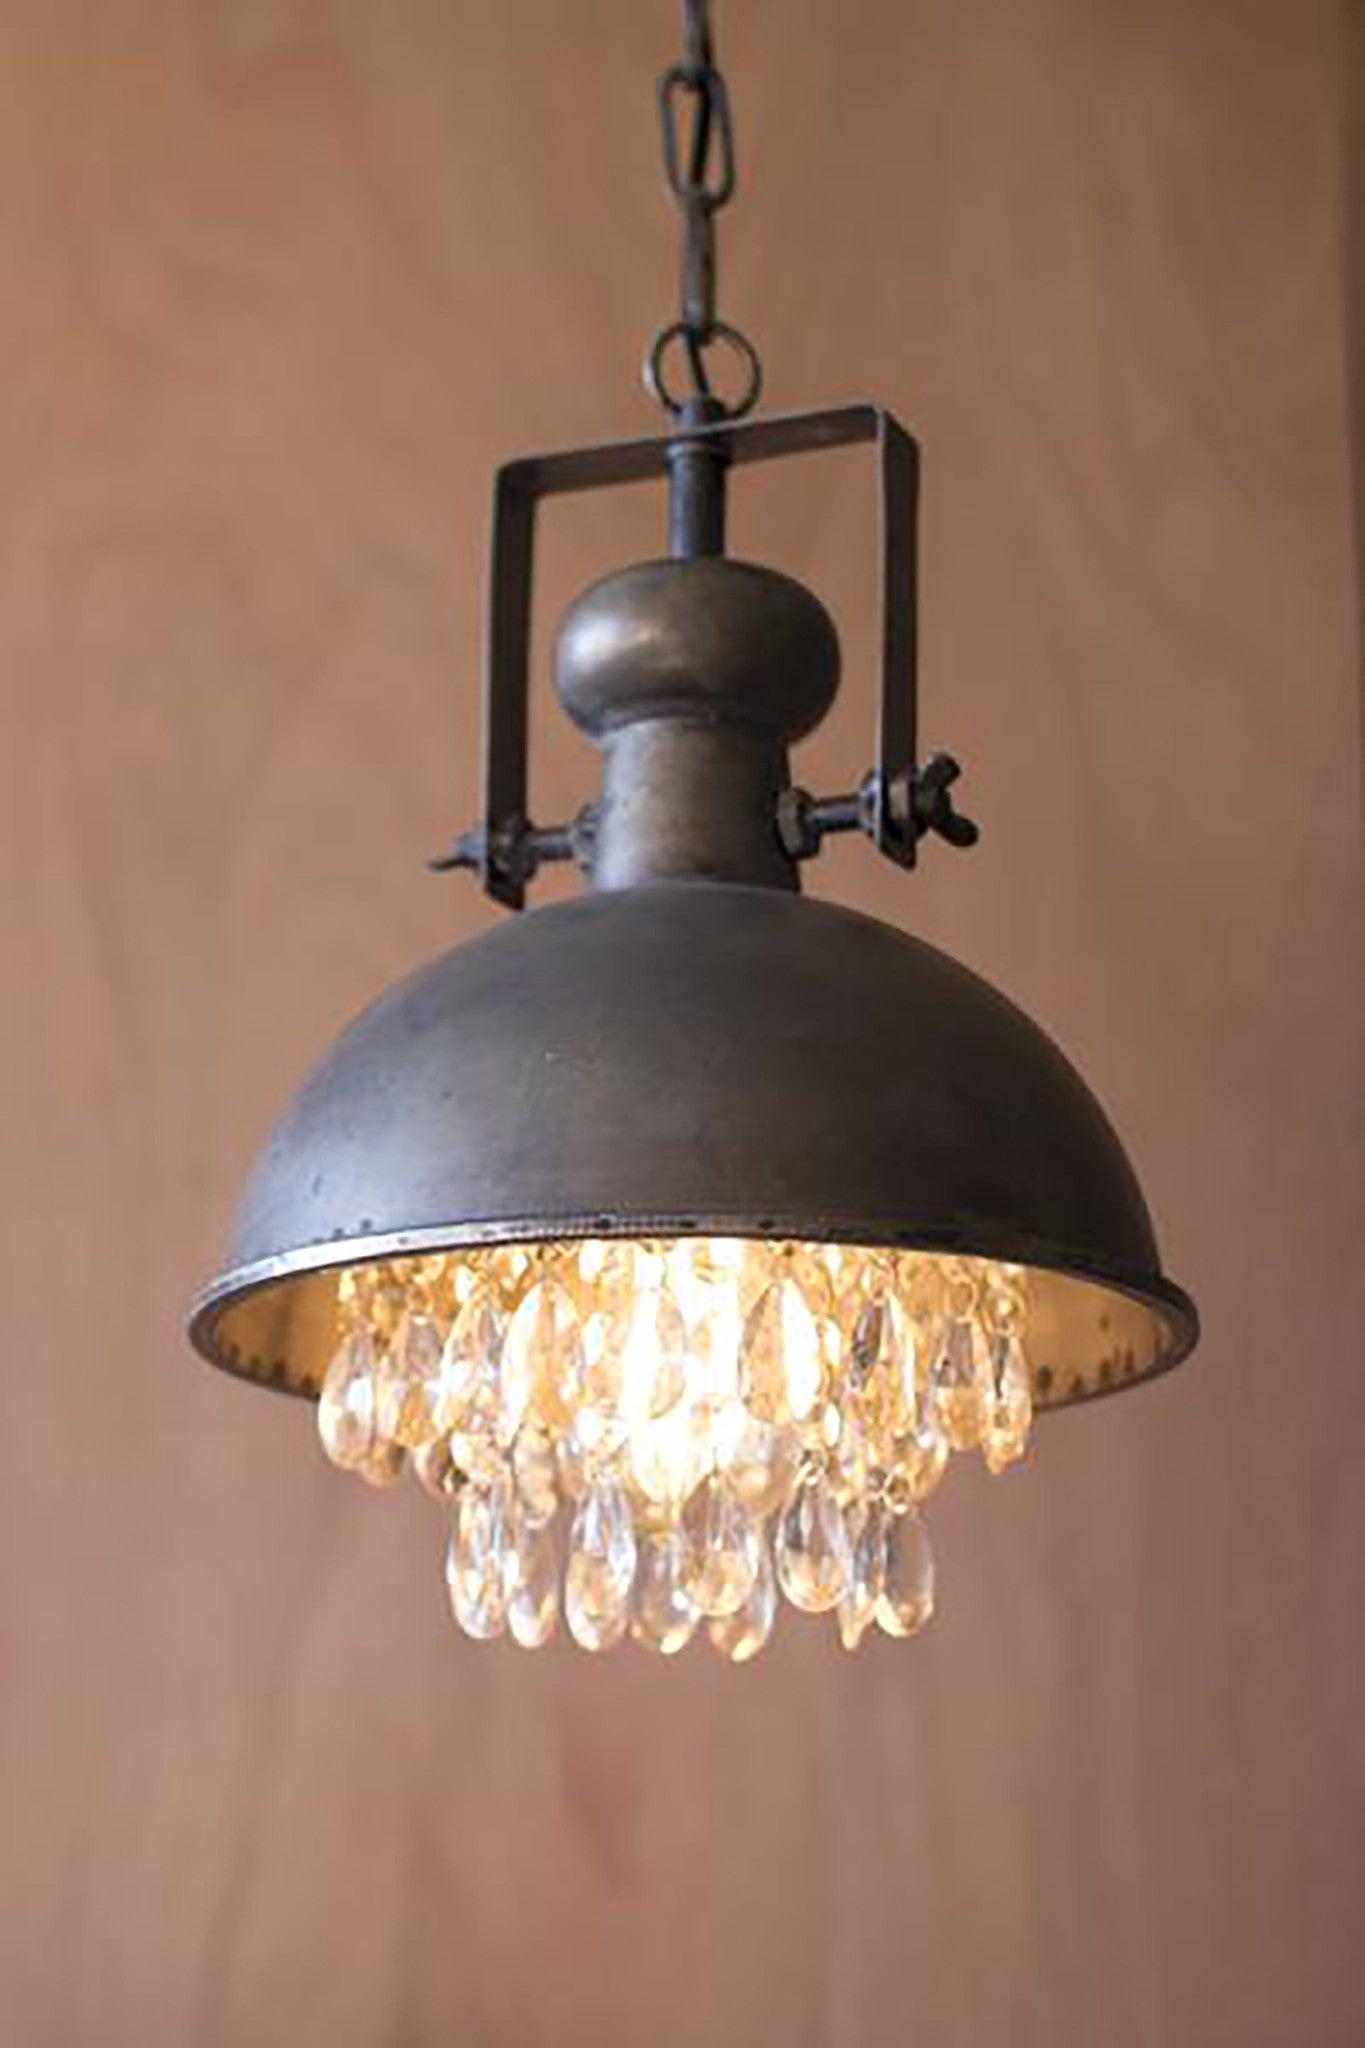 lamp shop l silver home light slide cairo lamps modern pendant aviva egyptian lighting metal